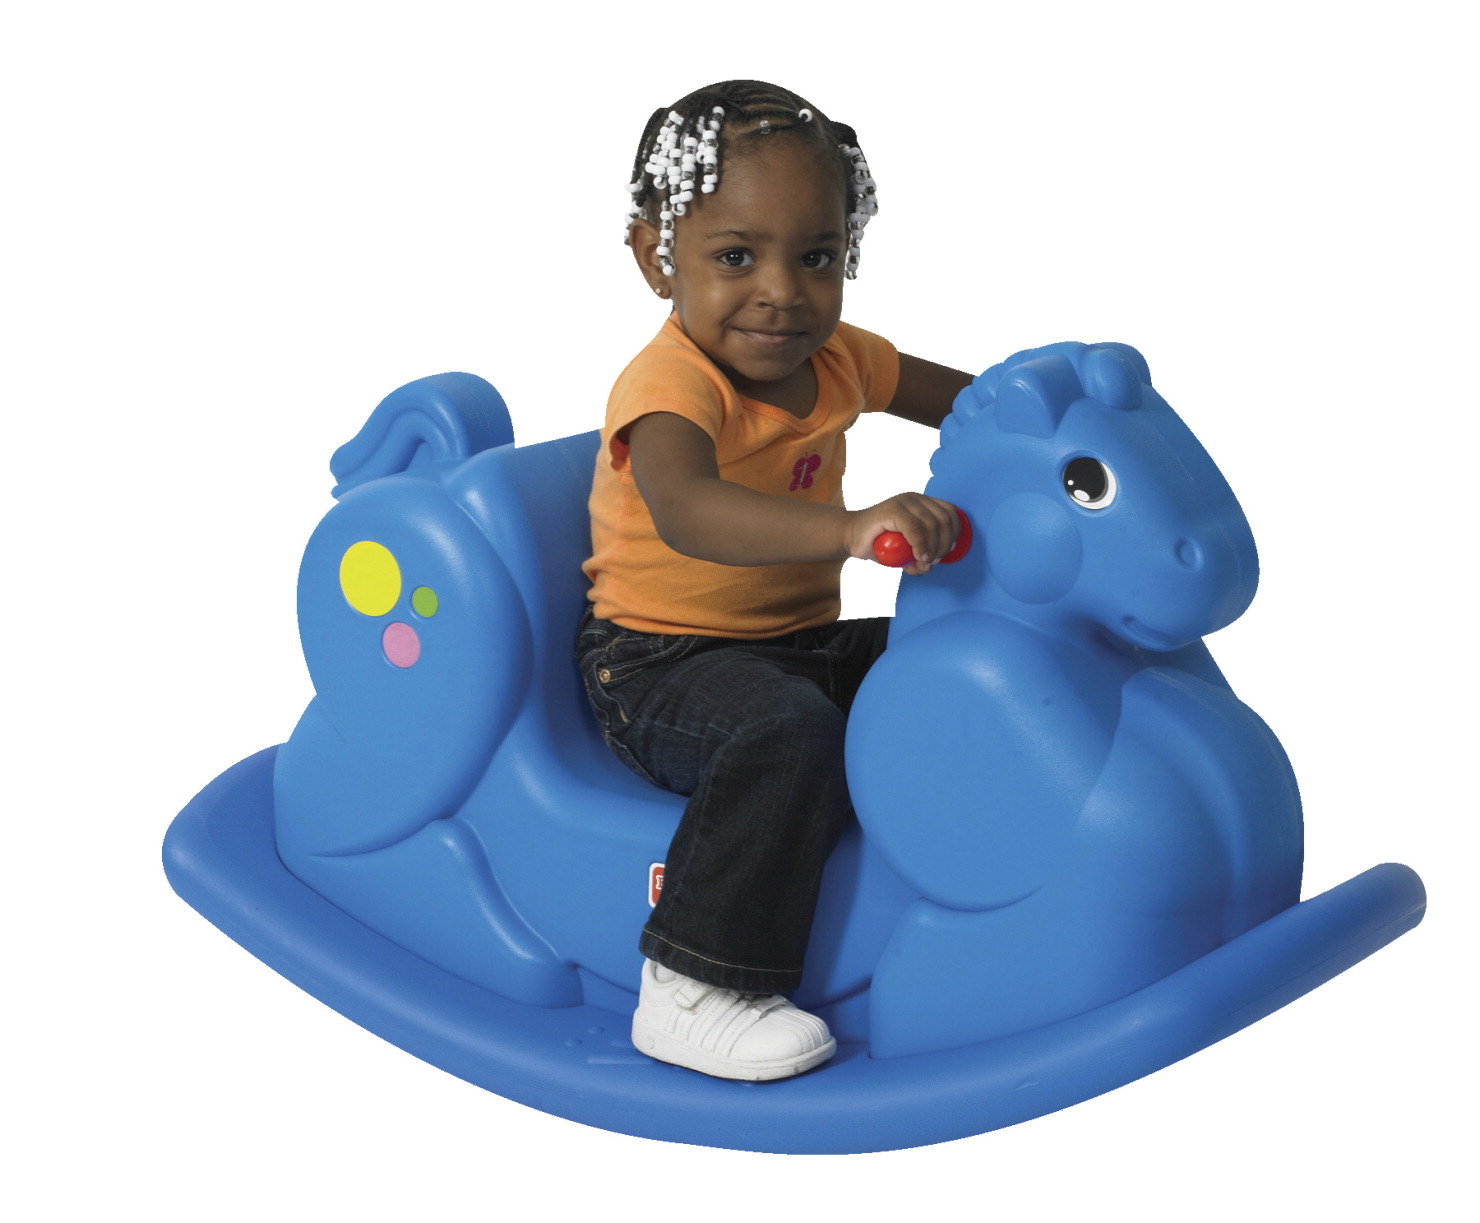 Children's Factory Rocking Horse, Blue